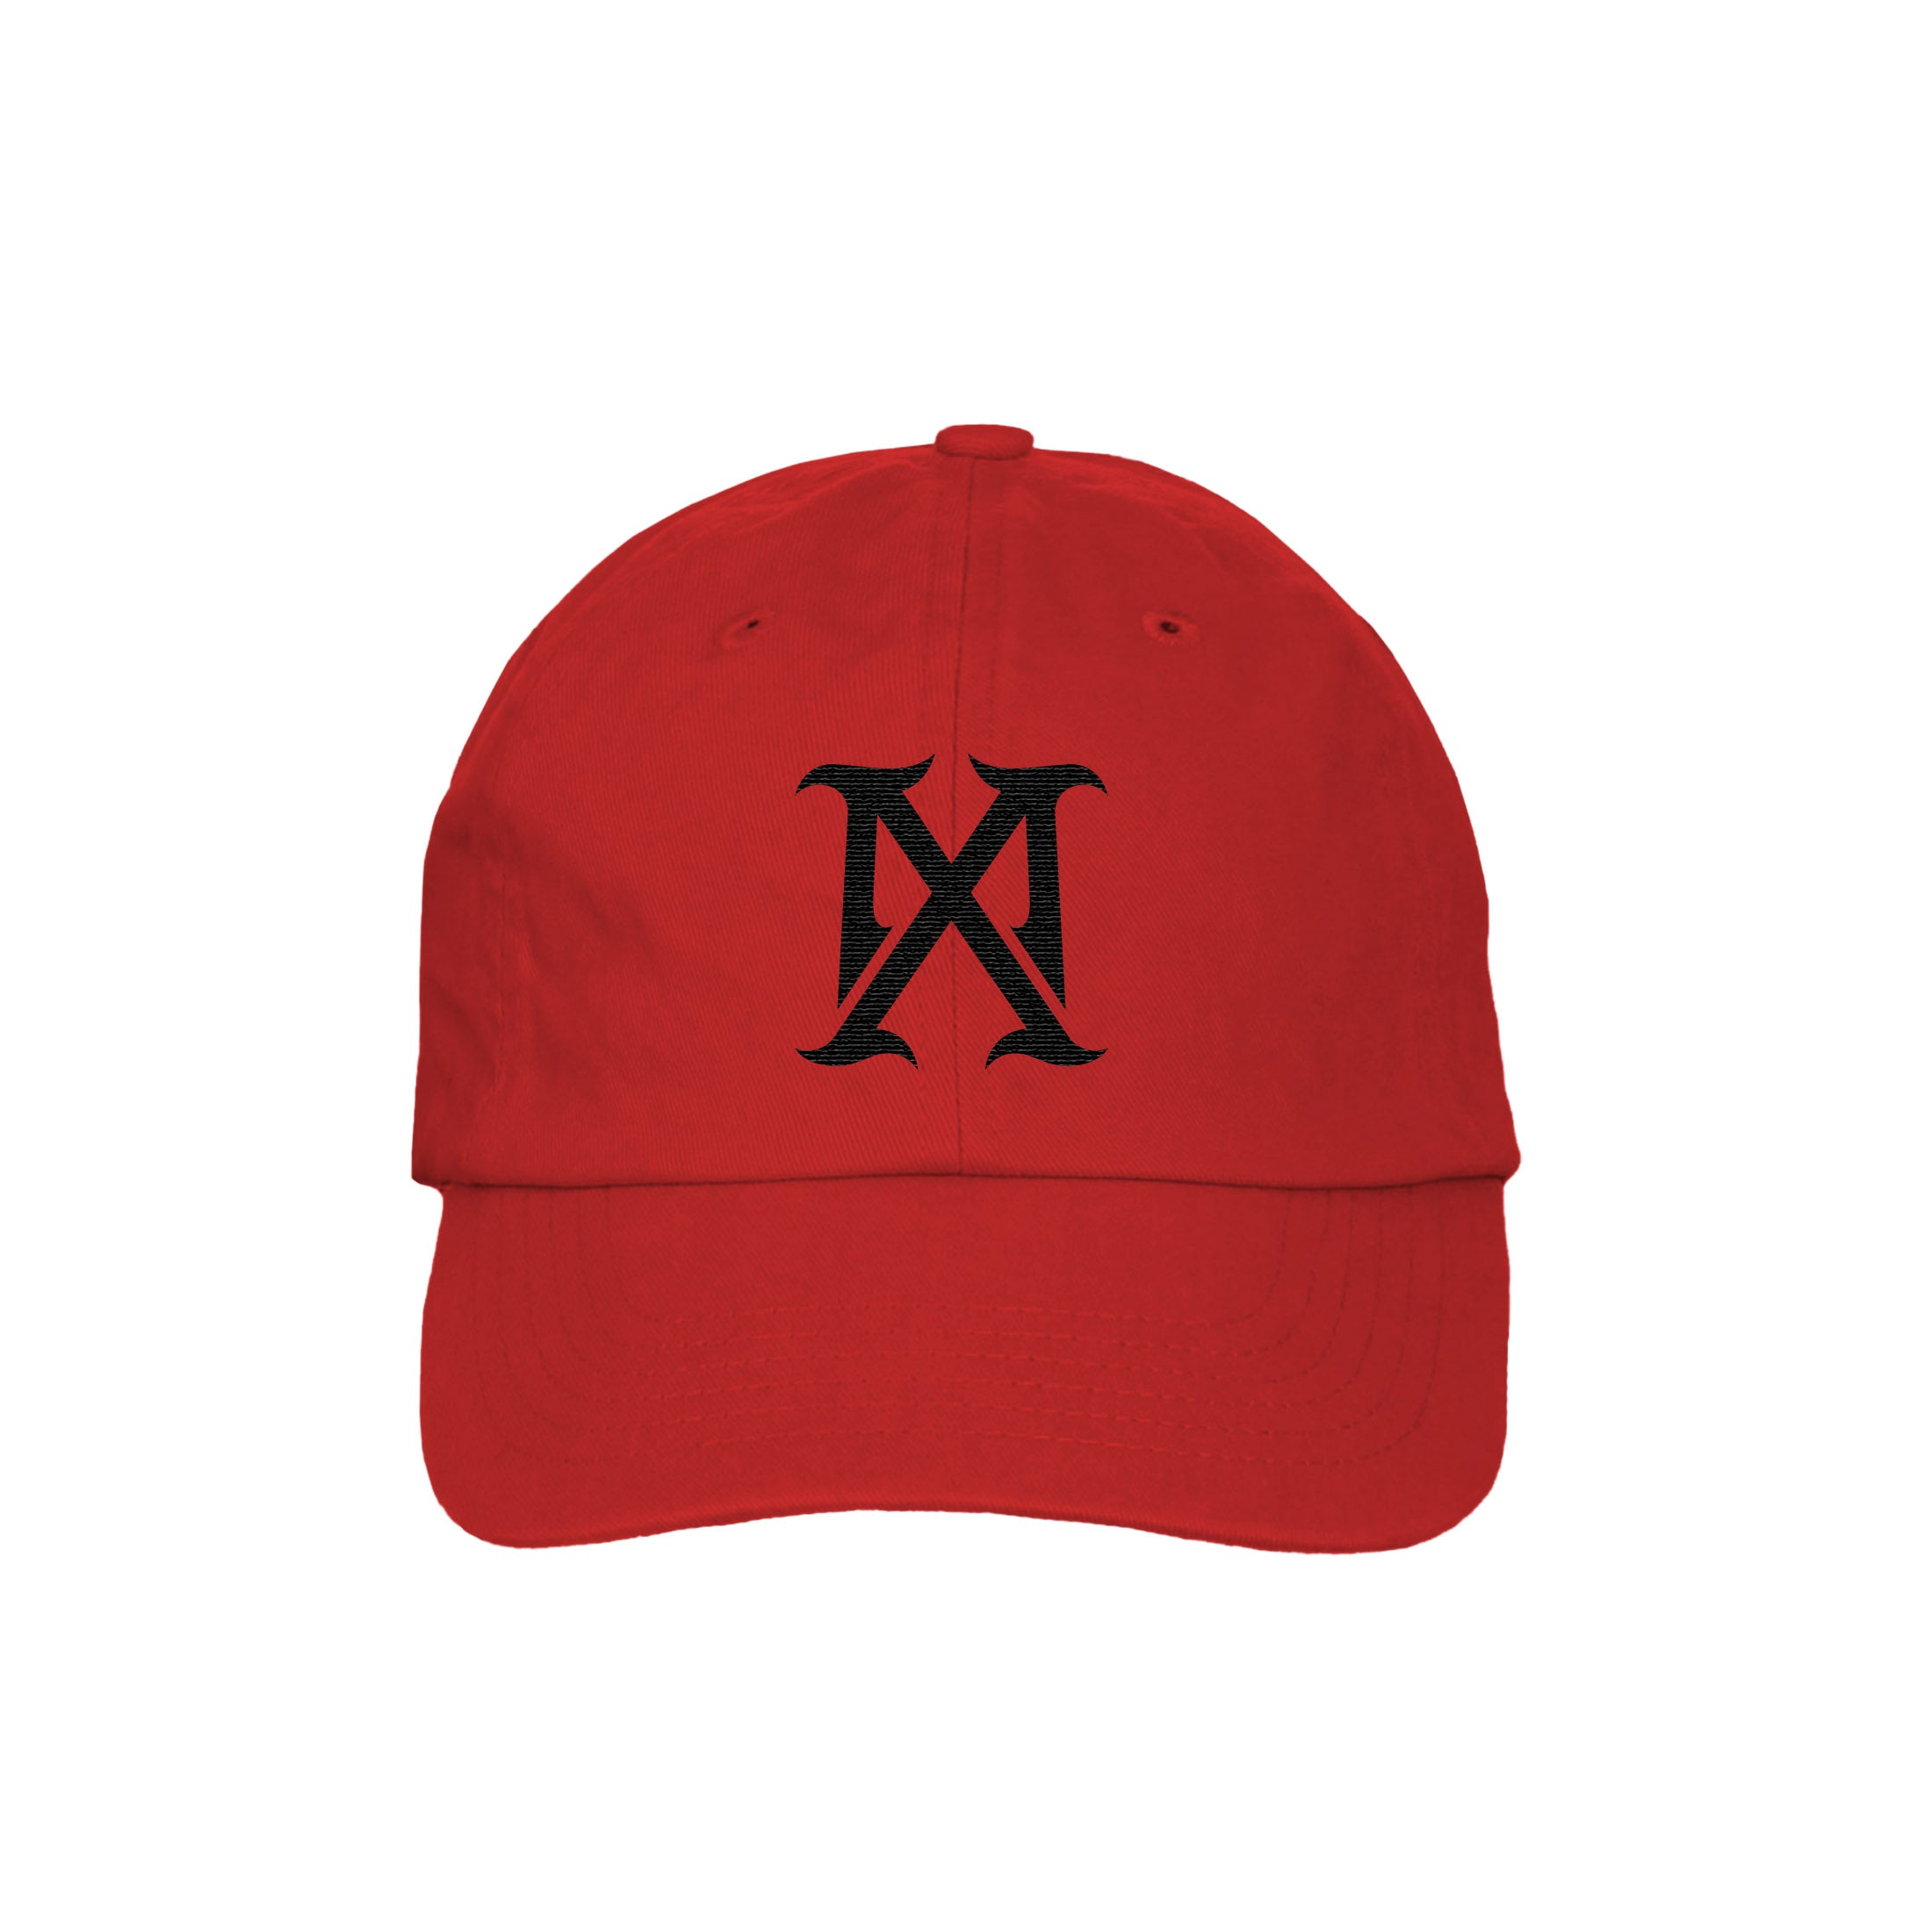 Madonna MX Tour Hat